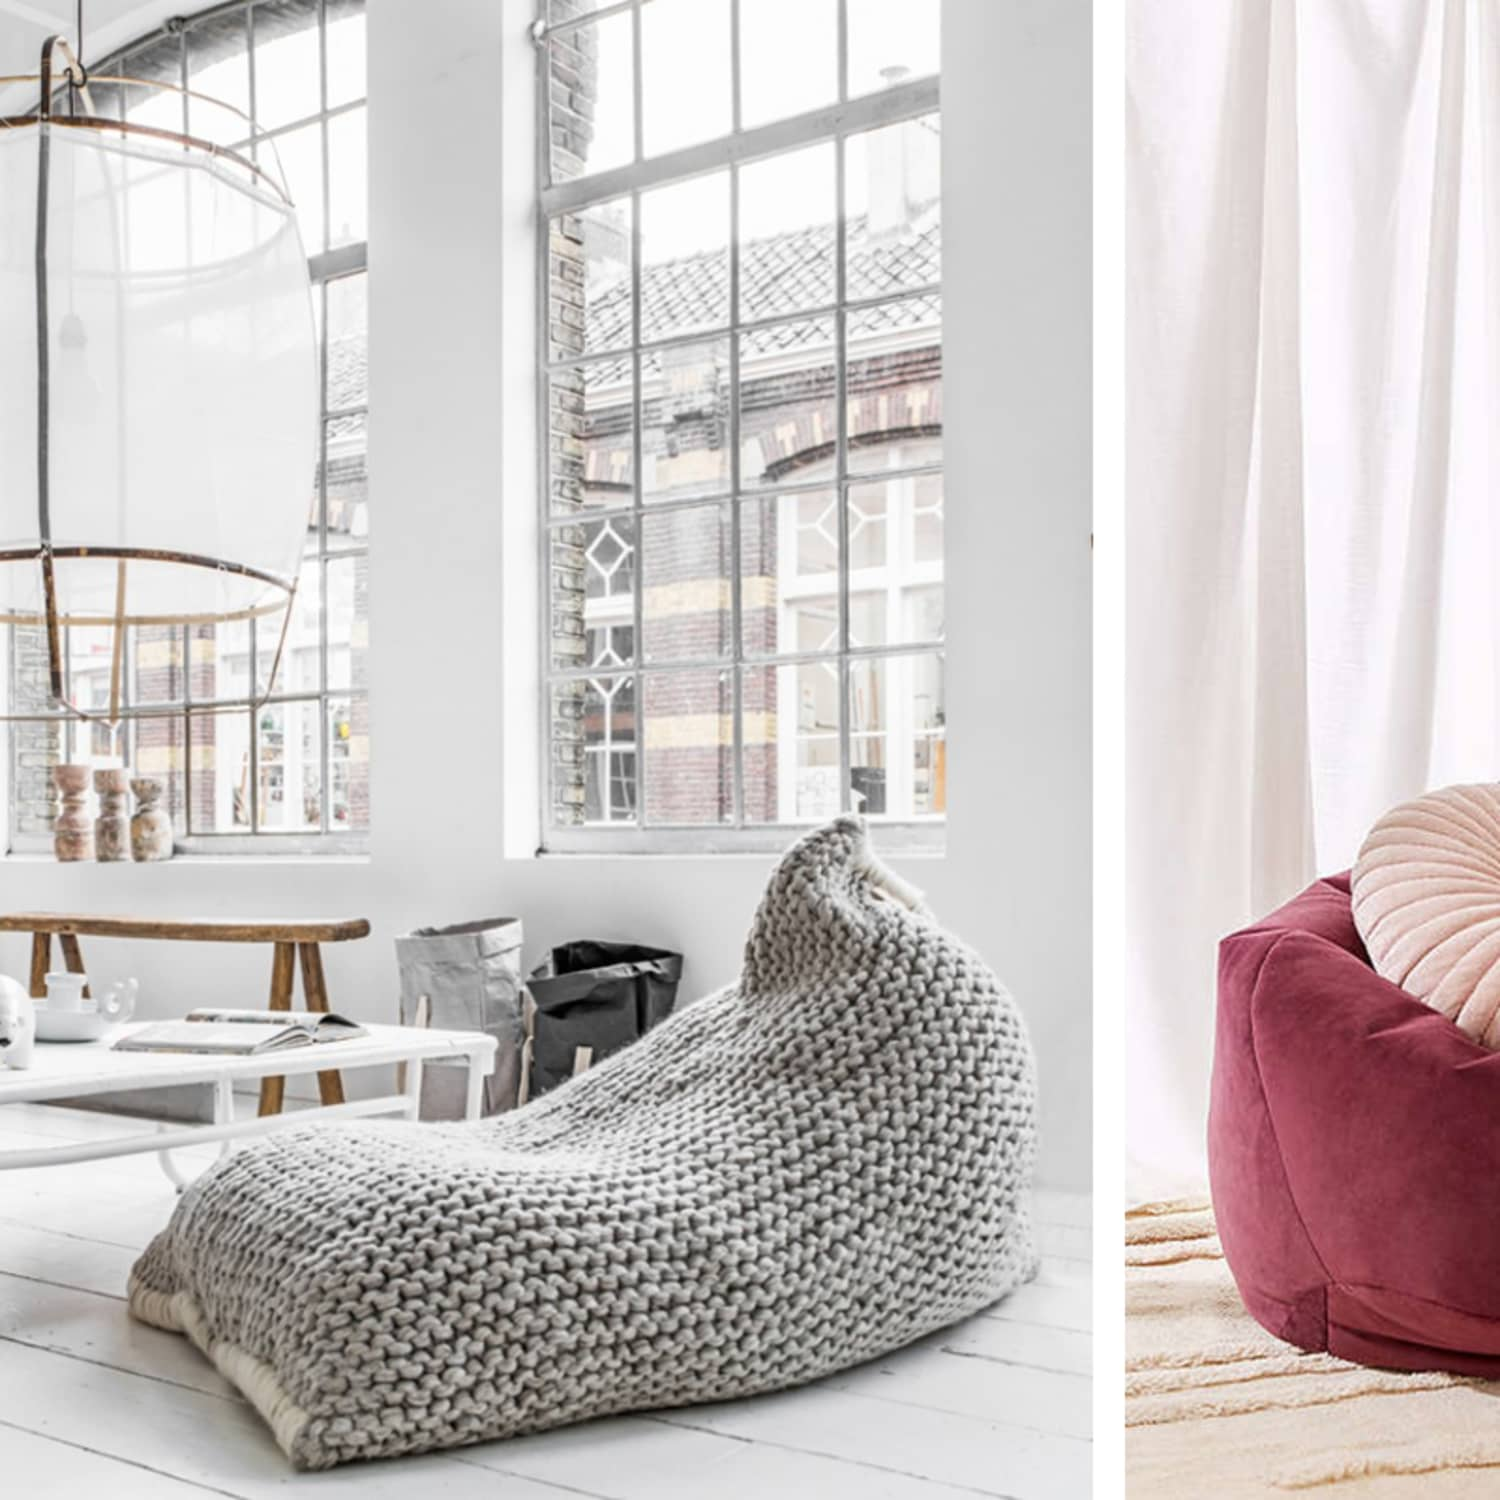 Luxury Bean Bag Sofas | Fuf Bean Bag Sofa Luxury Beanbags ...